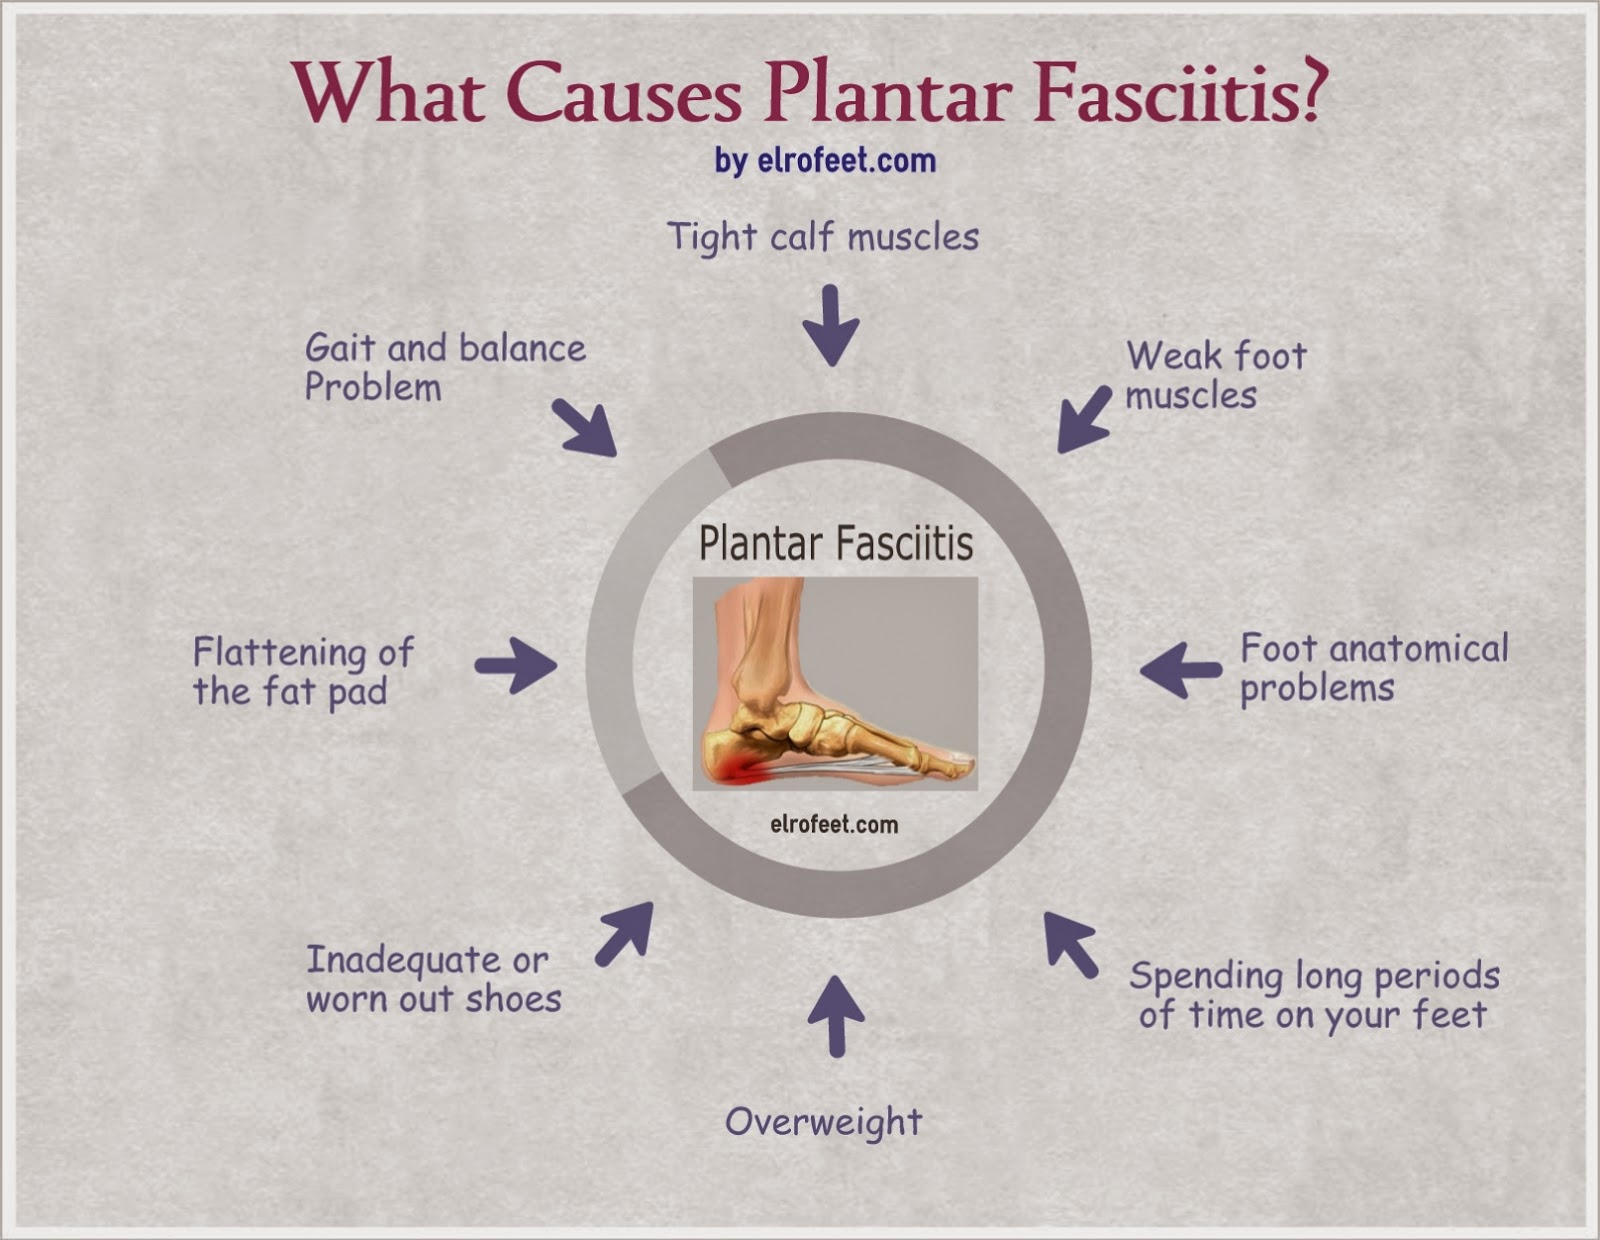 Living The Tri Life!: The Dreaded Plantar Fasciitis